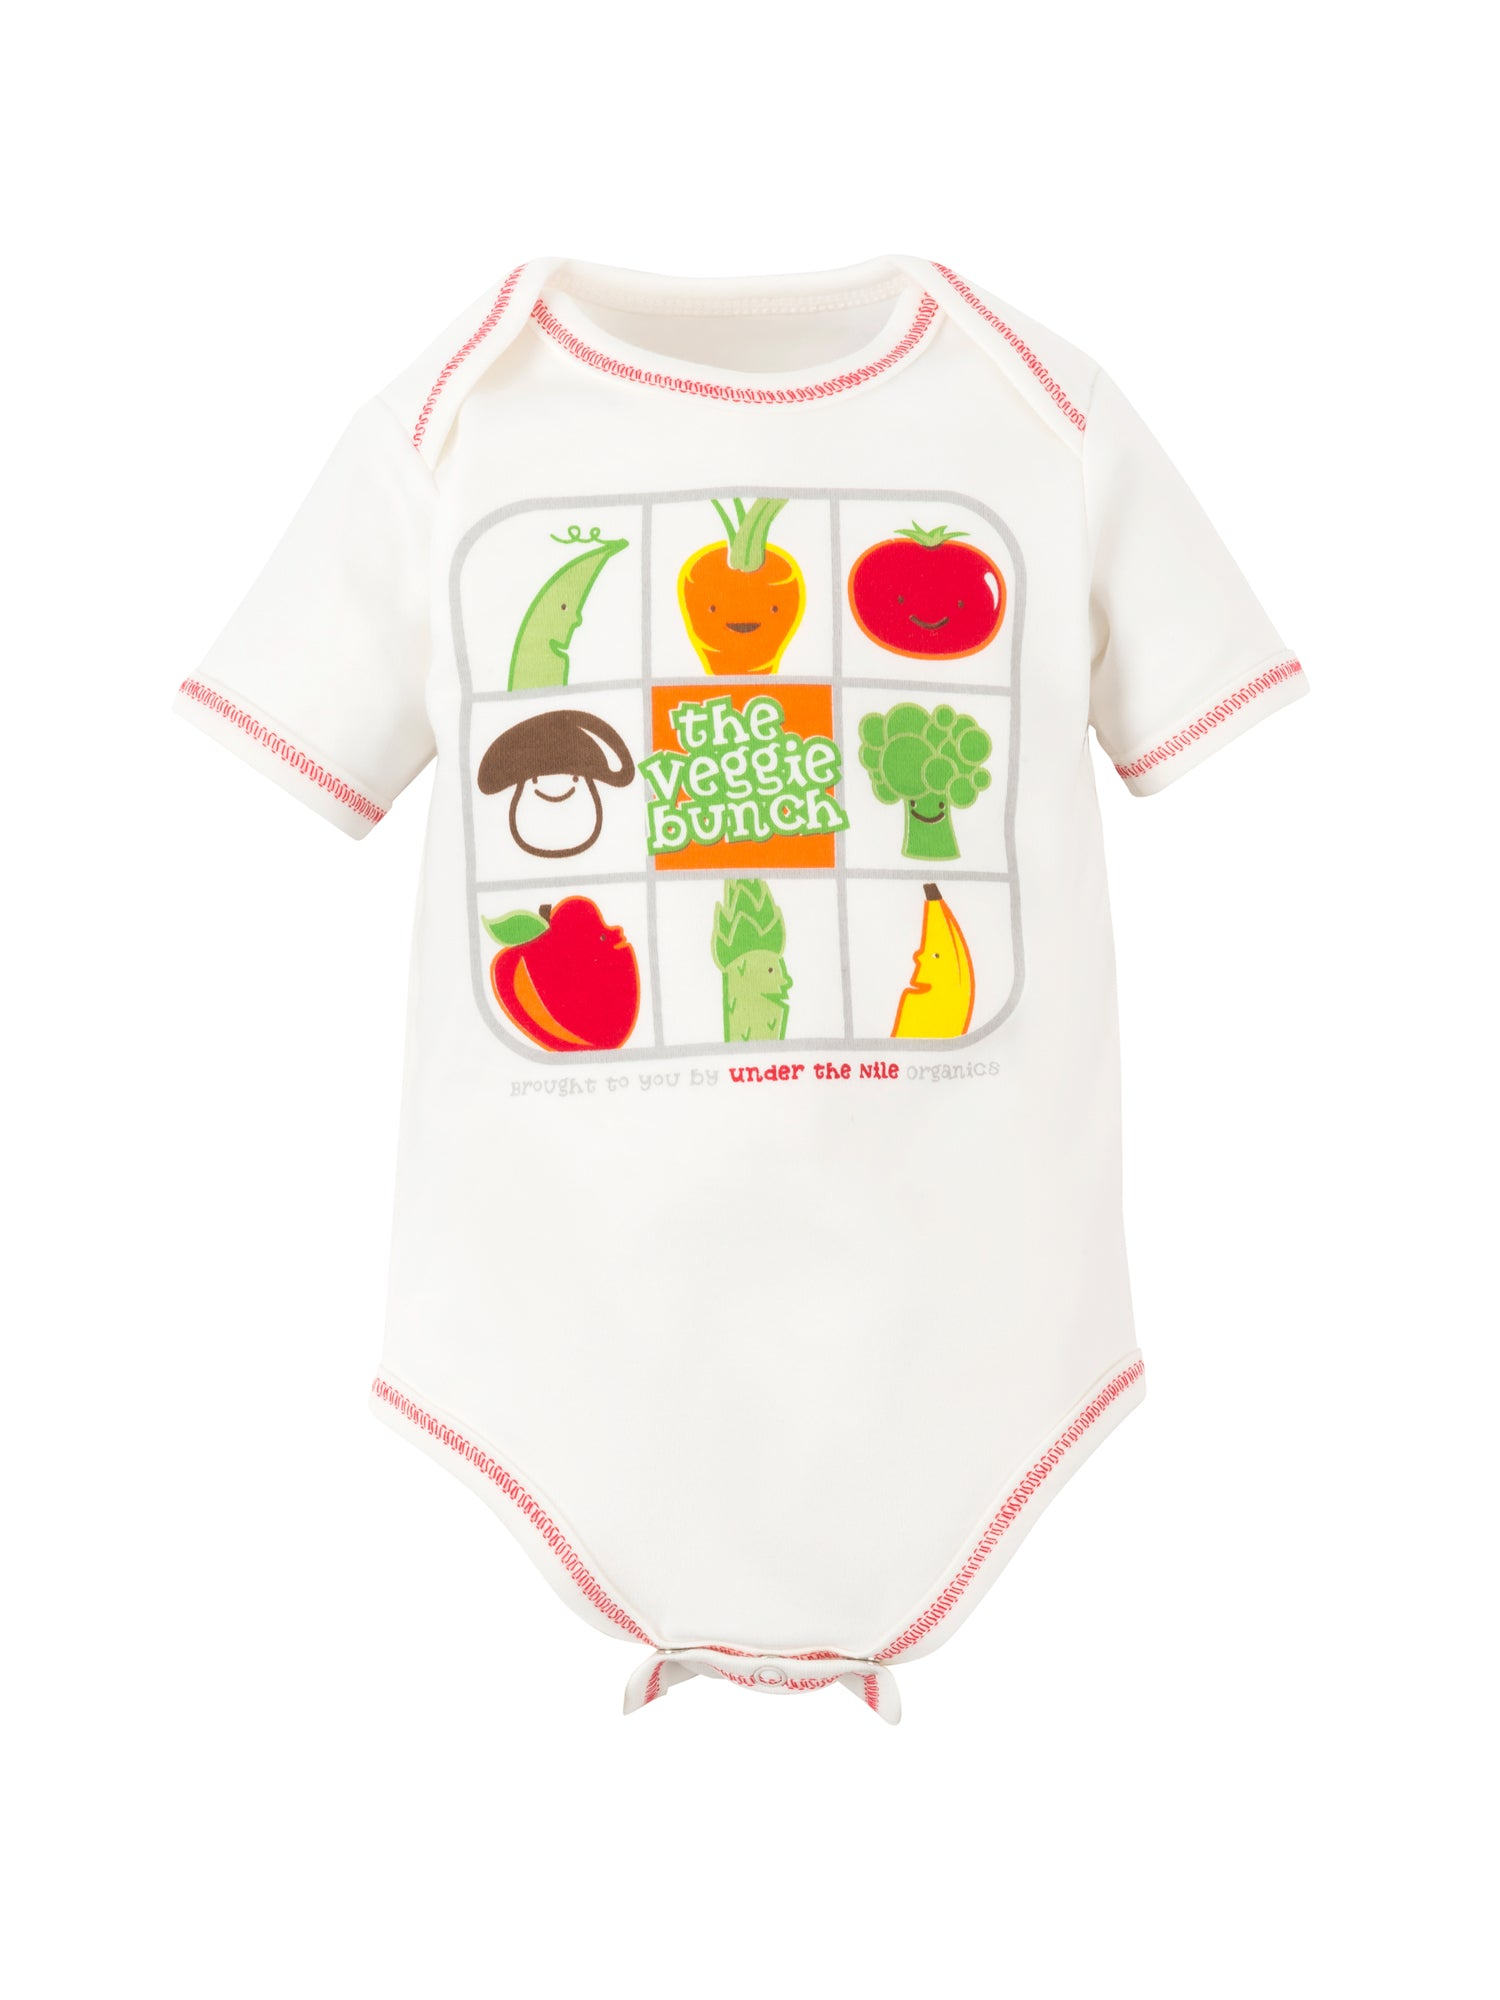 Veggie Bunch Onesie and Swaddle Gift Set